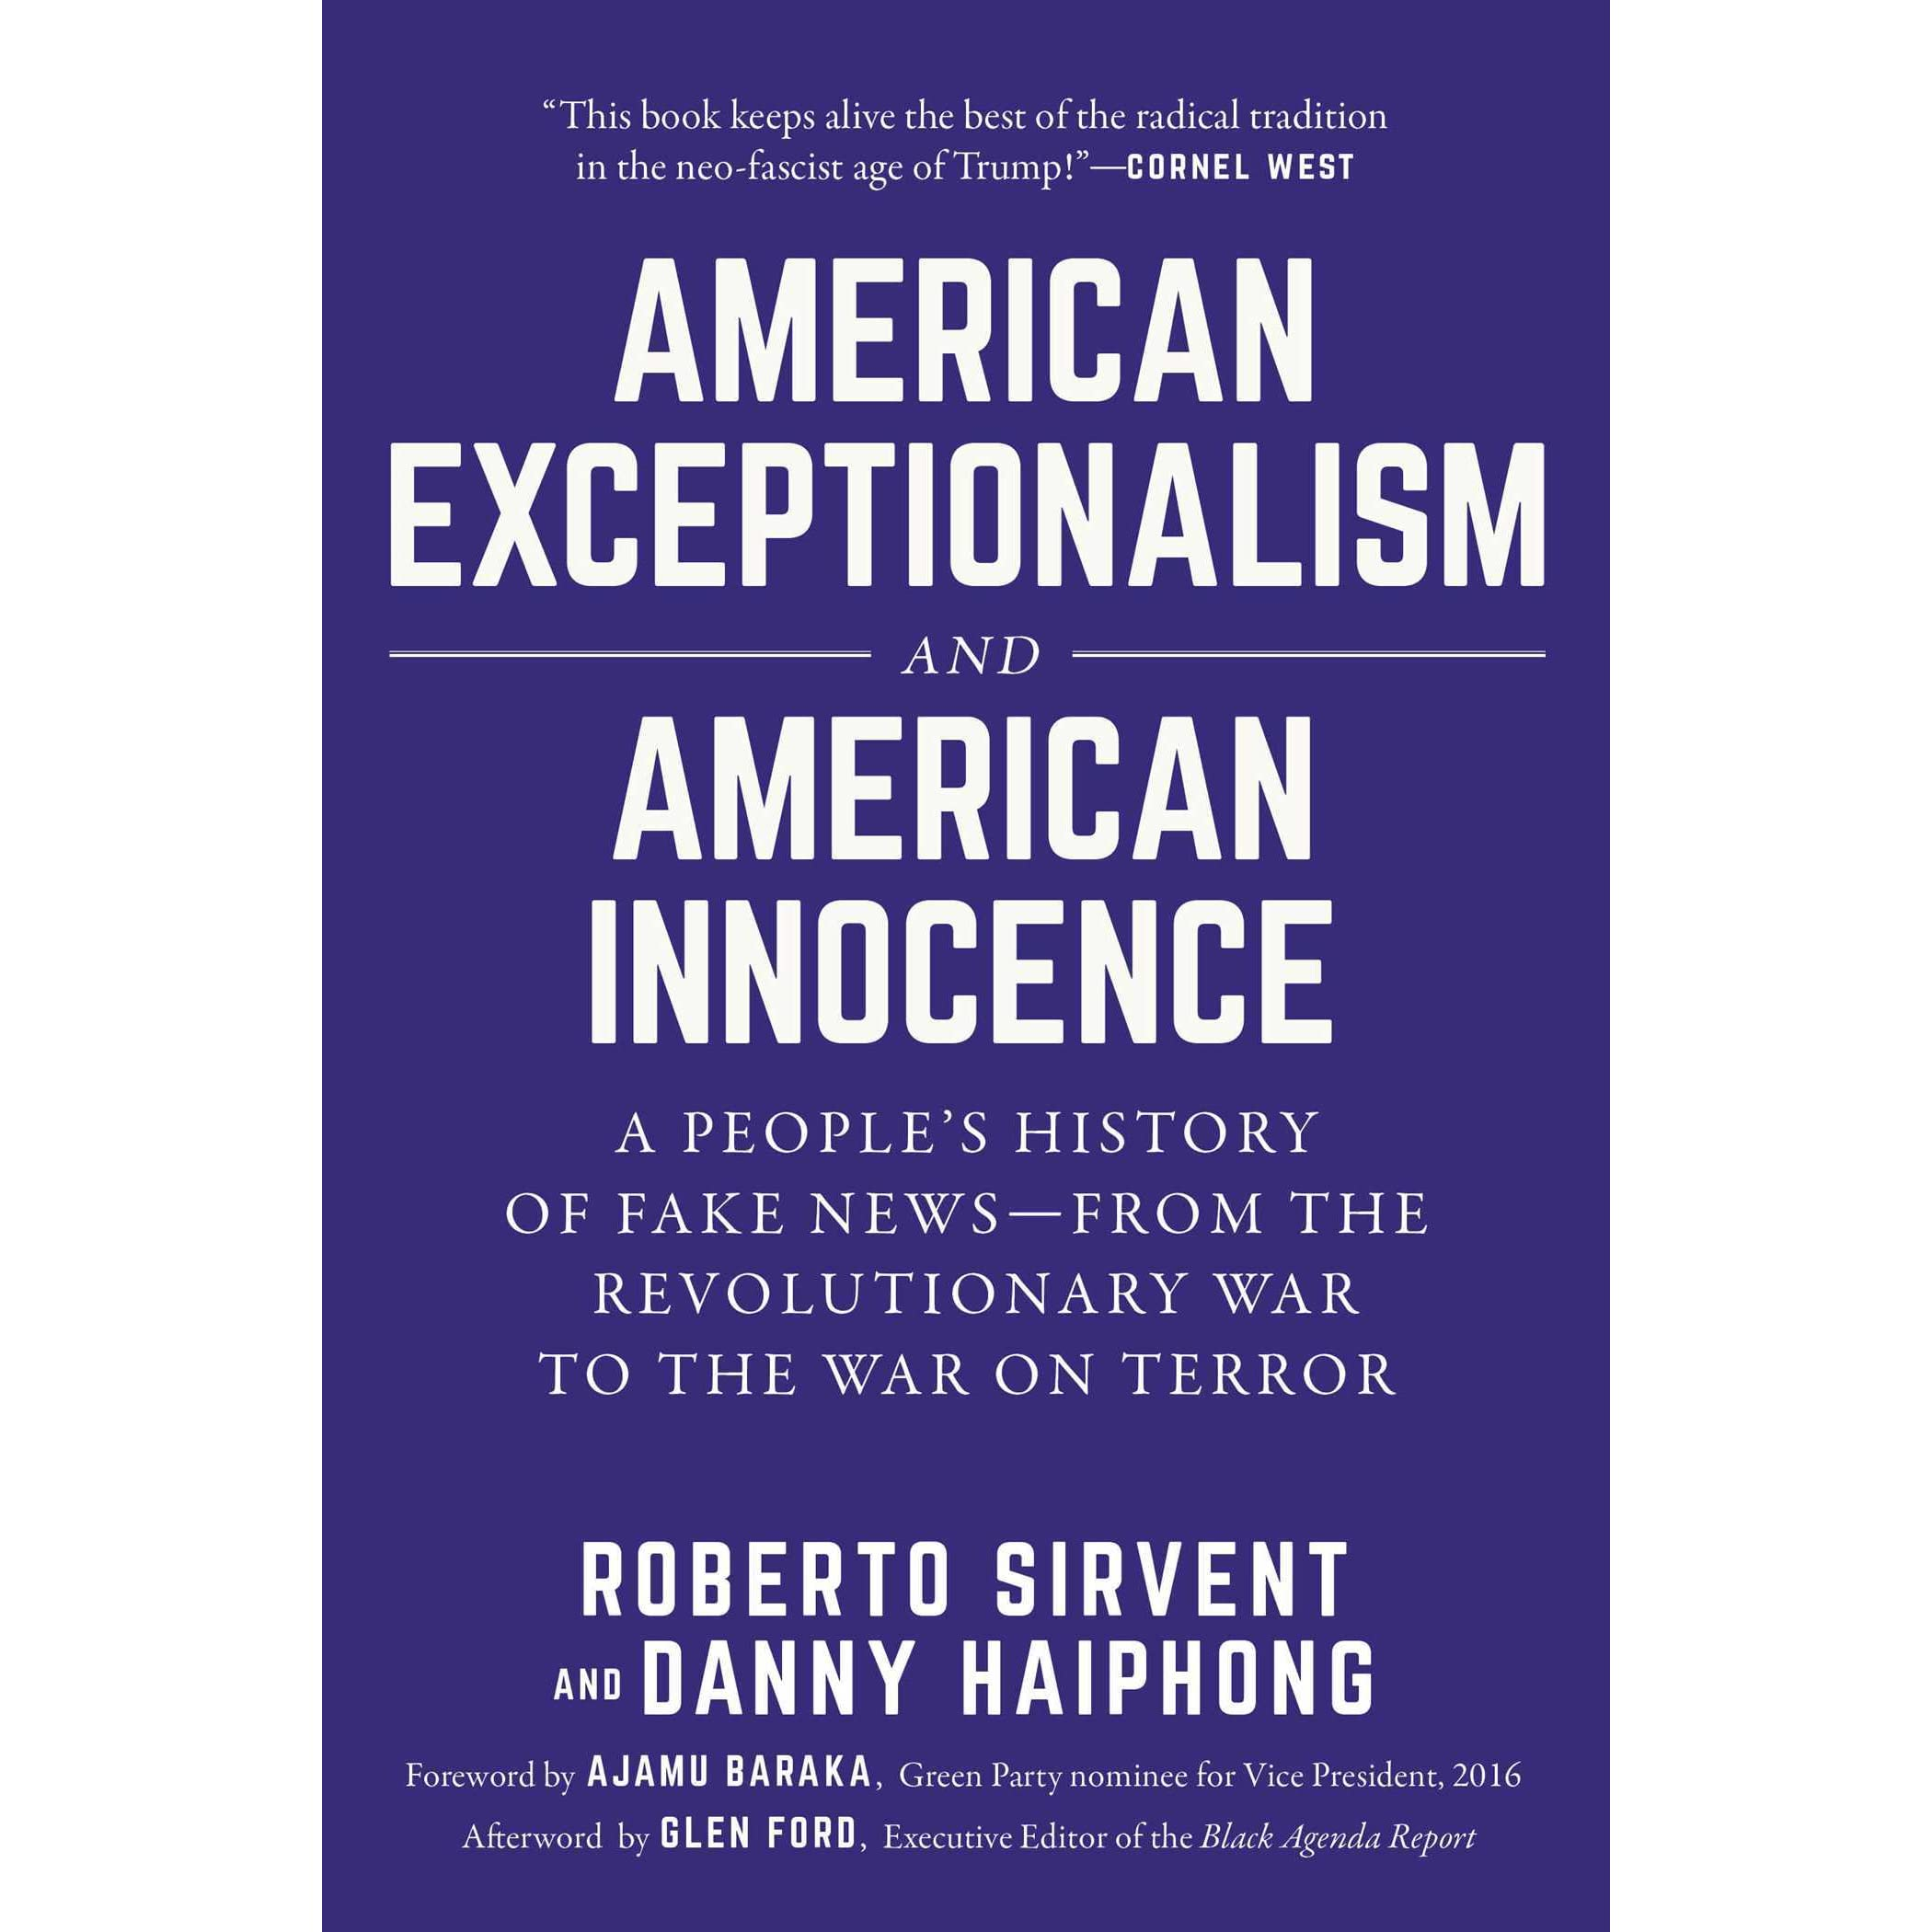 American Exceptionalism and American Innocence A Peoples History of Fake News―From the Revolutionary War to the War on Terror